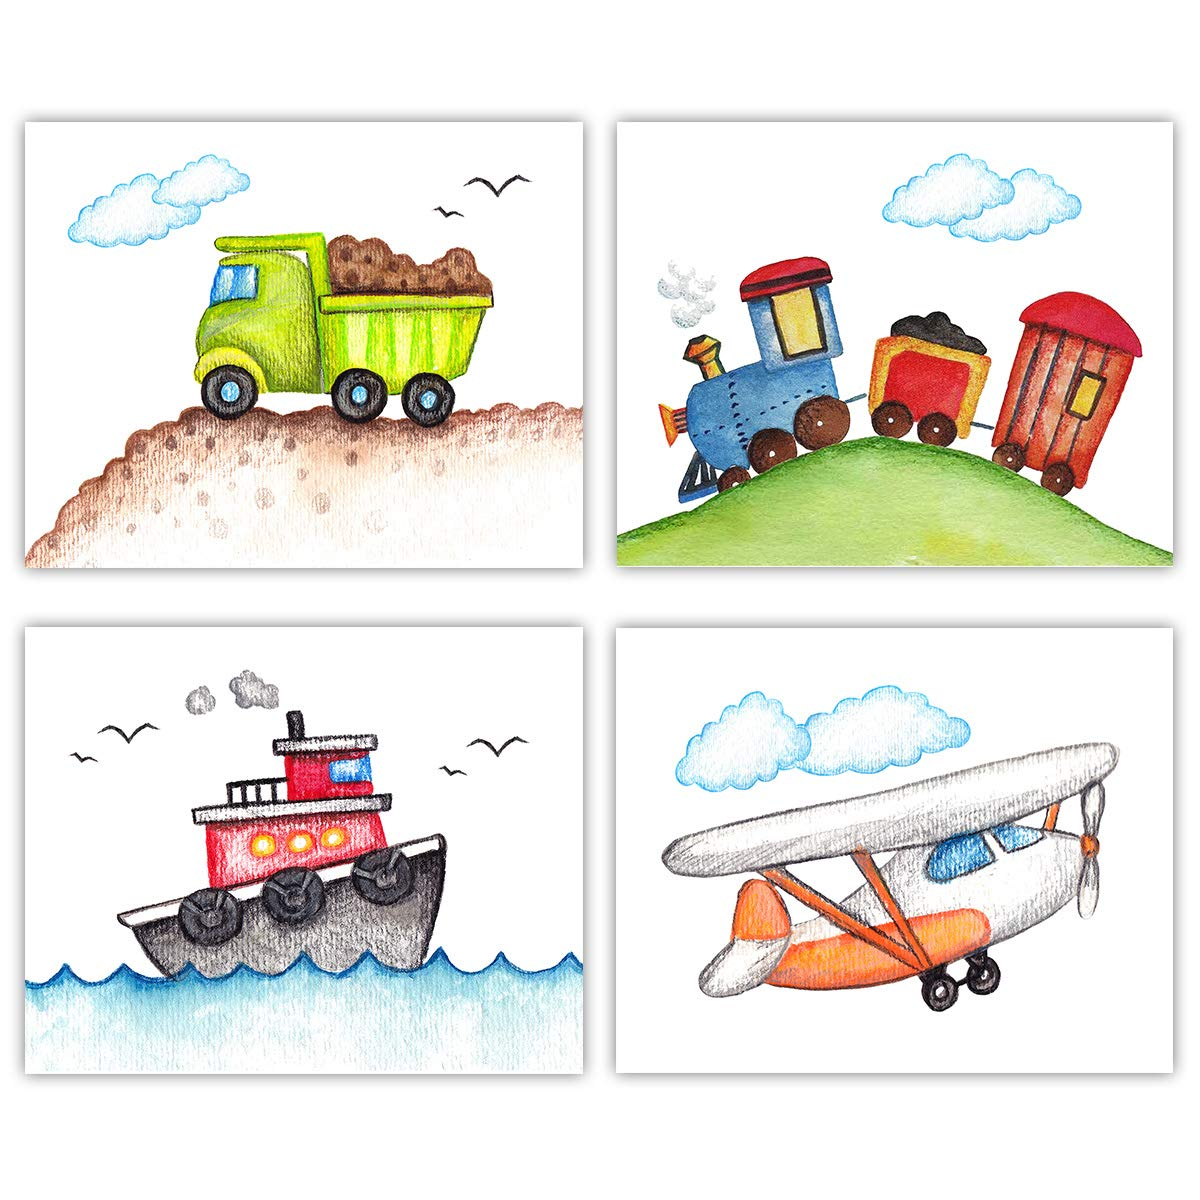 Vintage Airplane, Tug Boat, Dump Truck and Train Wall Art - Set of 4-8x10 UNFRAMED Watercolor Children's Decor Prints - Perfect for Baby's Nursery, Toddler or Little Boy Bedroom, Playroom.